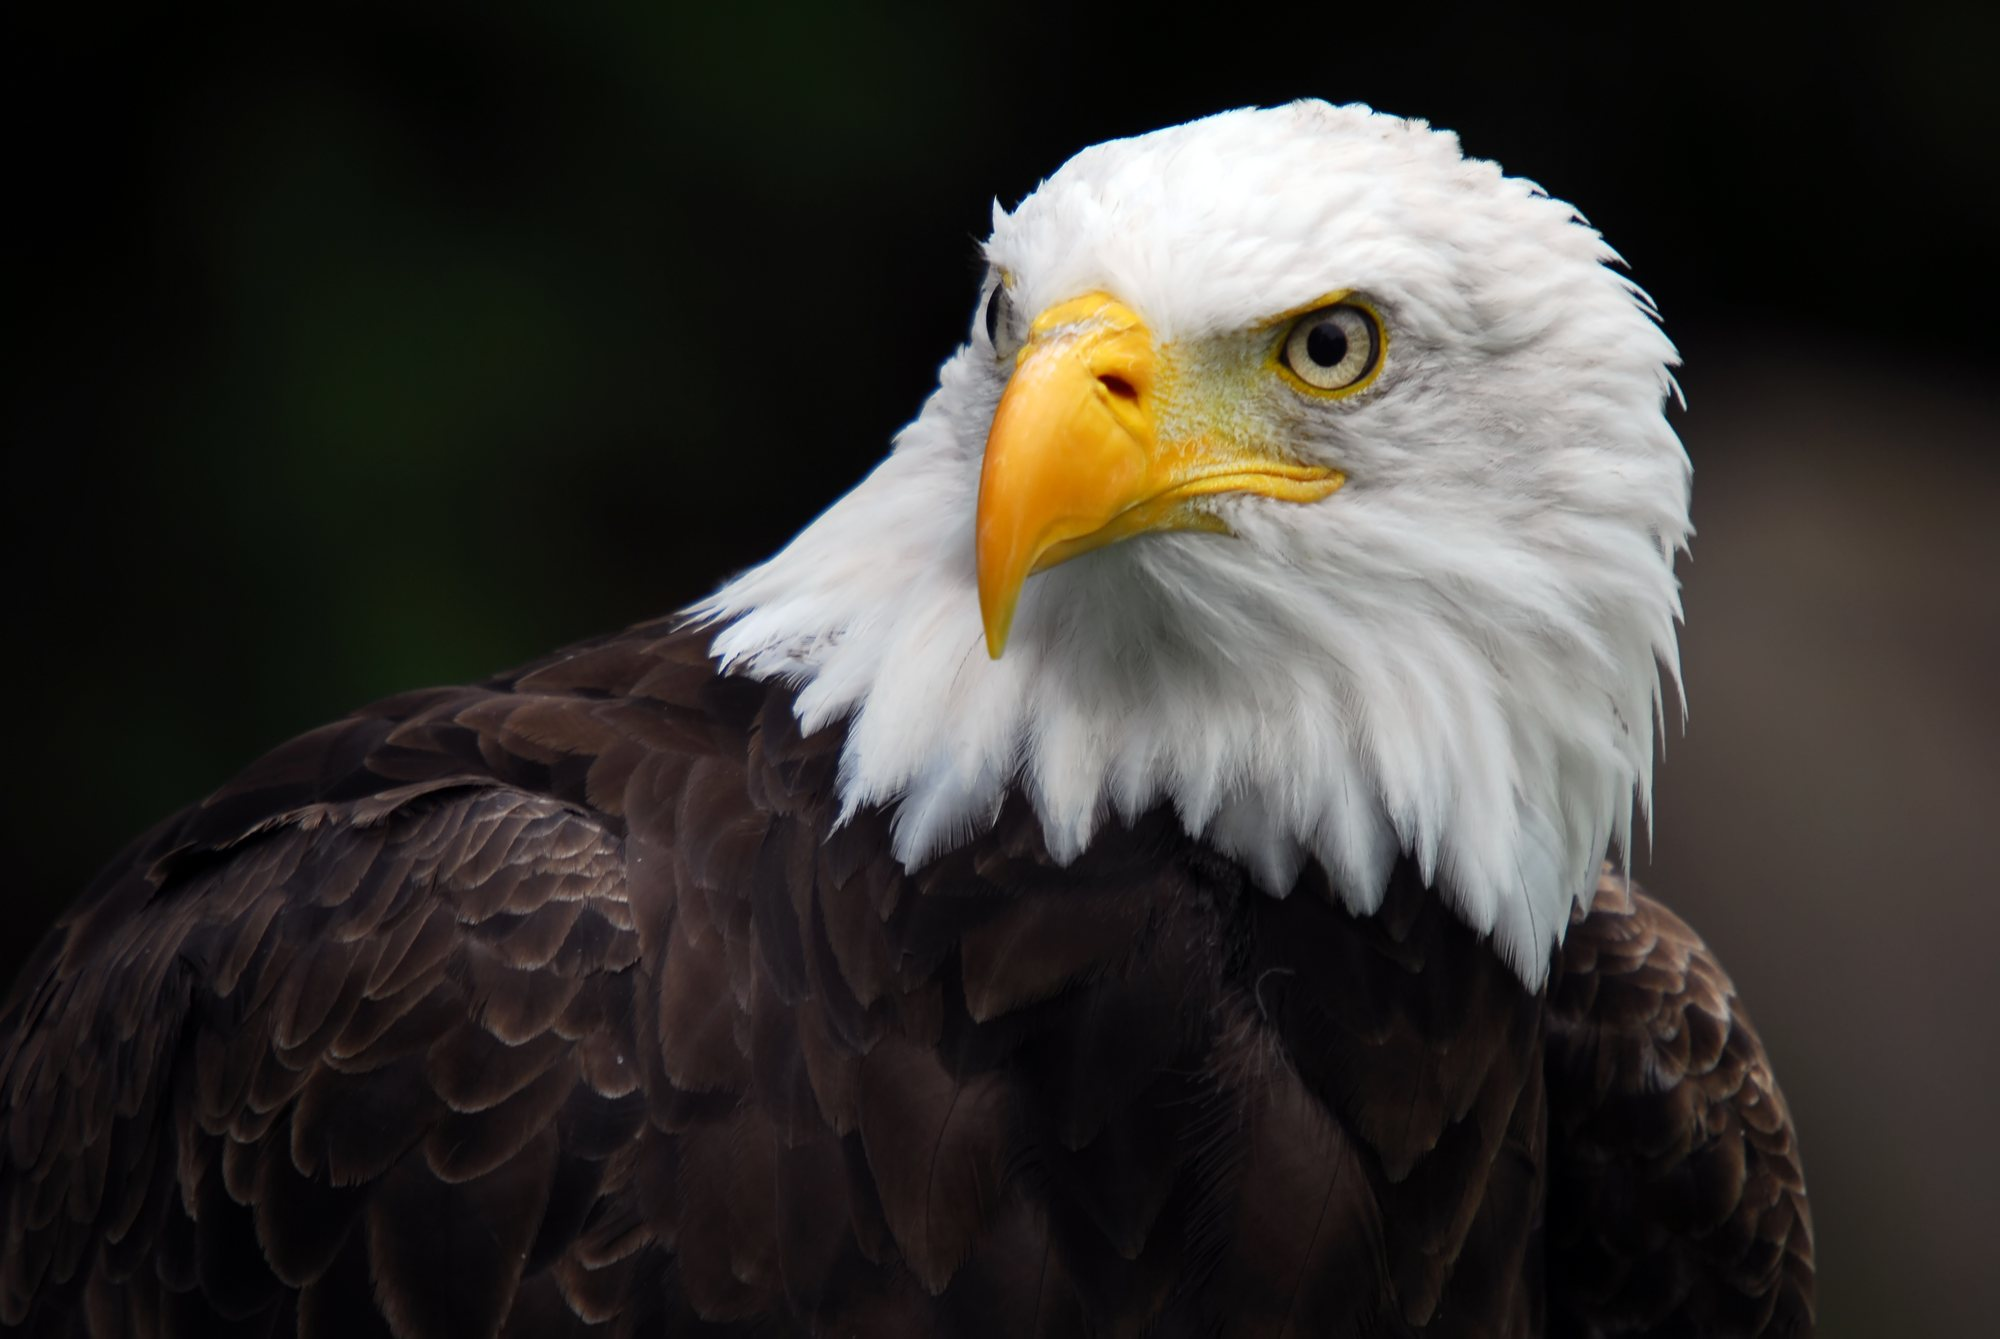 Eagle Wallpaper HD Images – One HD Wallpaper Pictures Backgrounds ...